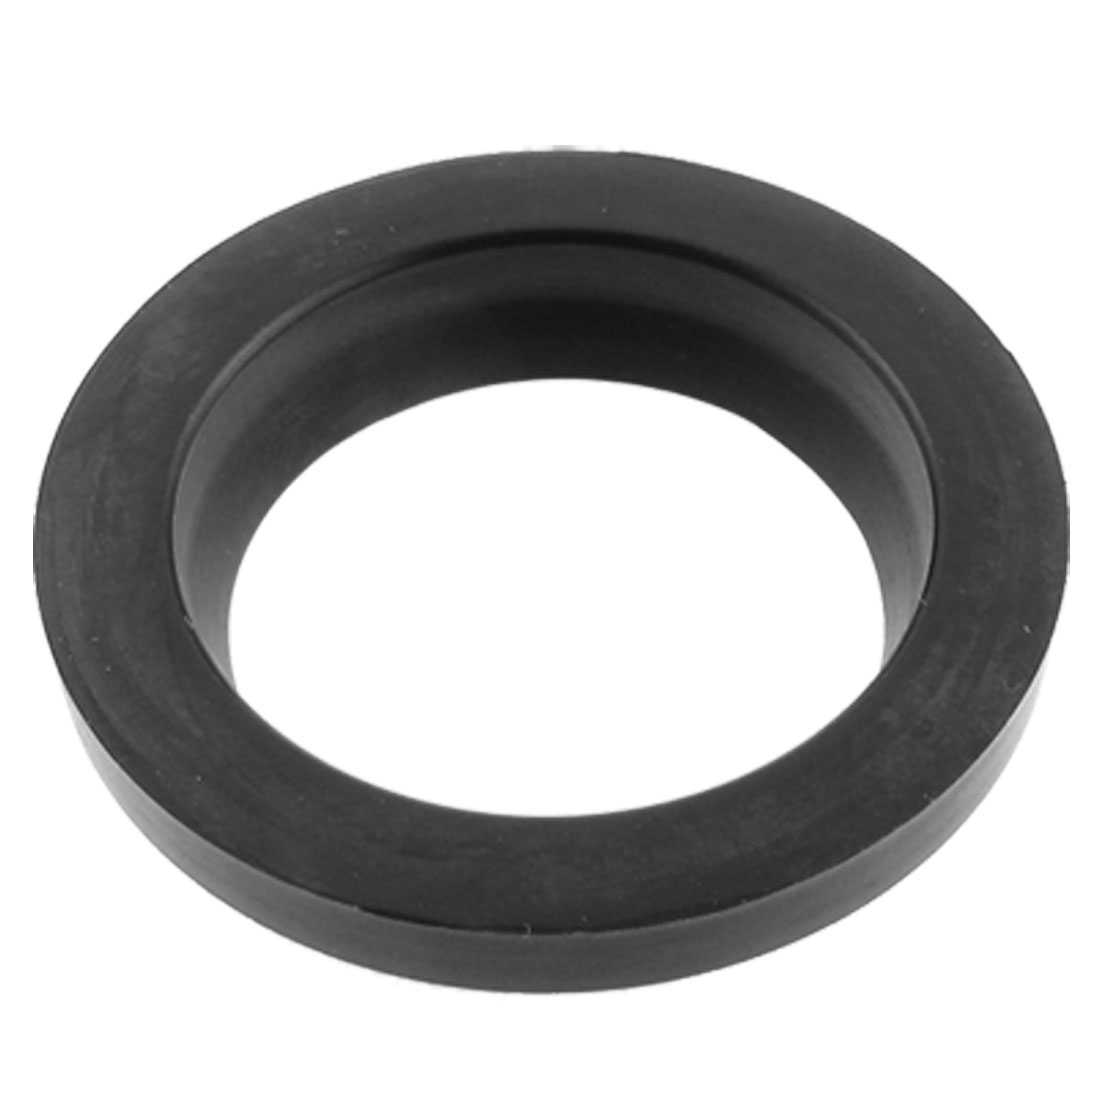 30mm x 42mm x 5mm x 9mm PU Dust Proof Shaft Oil Seal Black